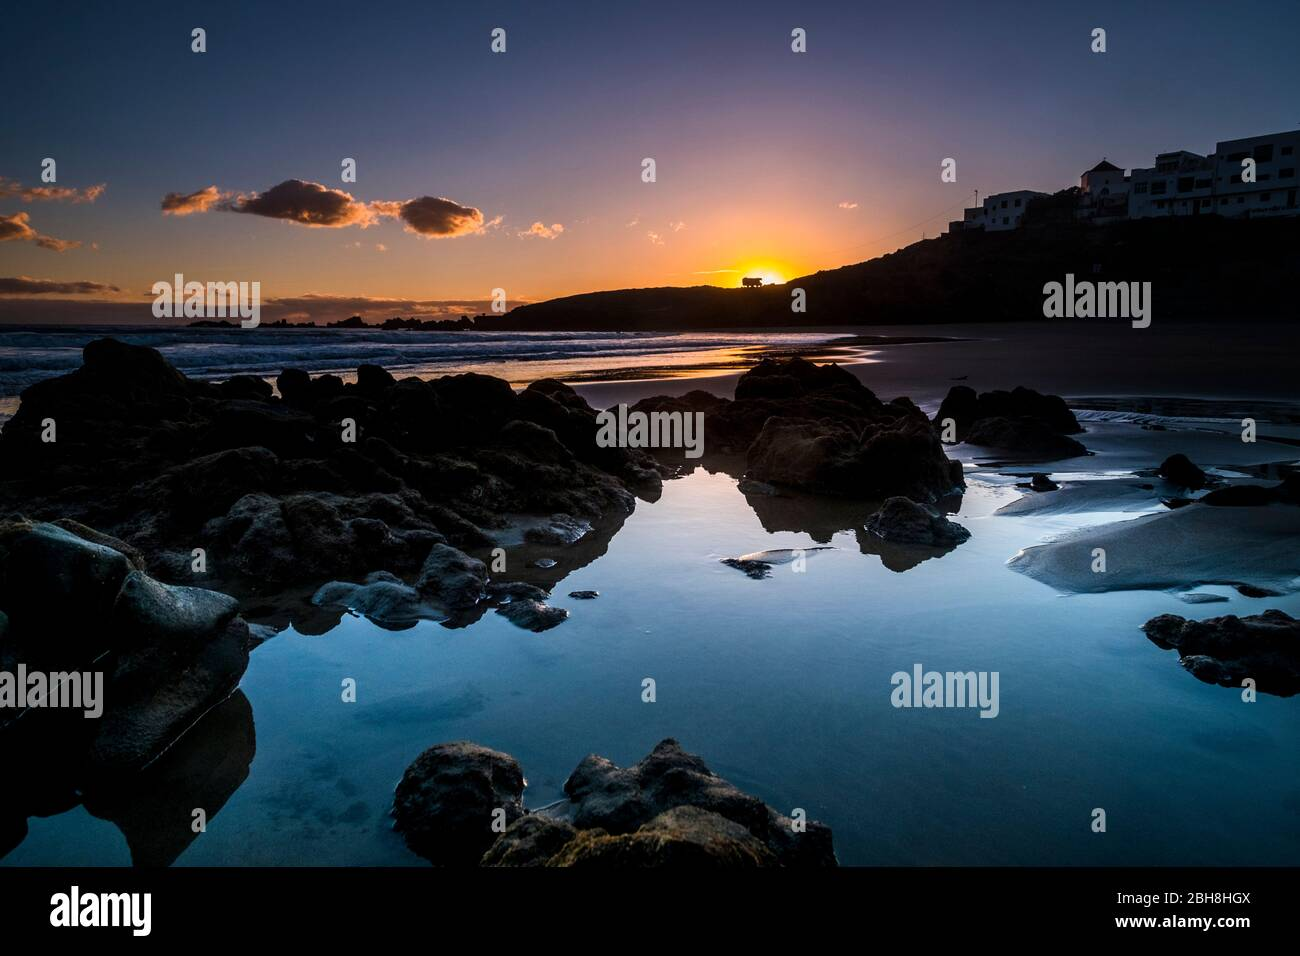 Sunrise or sunset at the ocean beach - beautiful colors and wave and sky - environment and vacation scenery place concept - landscape with coastal city and red clouds - magic light before the day Stock Photo